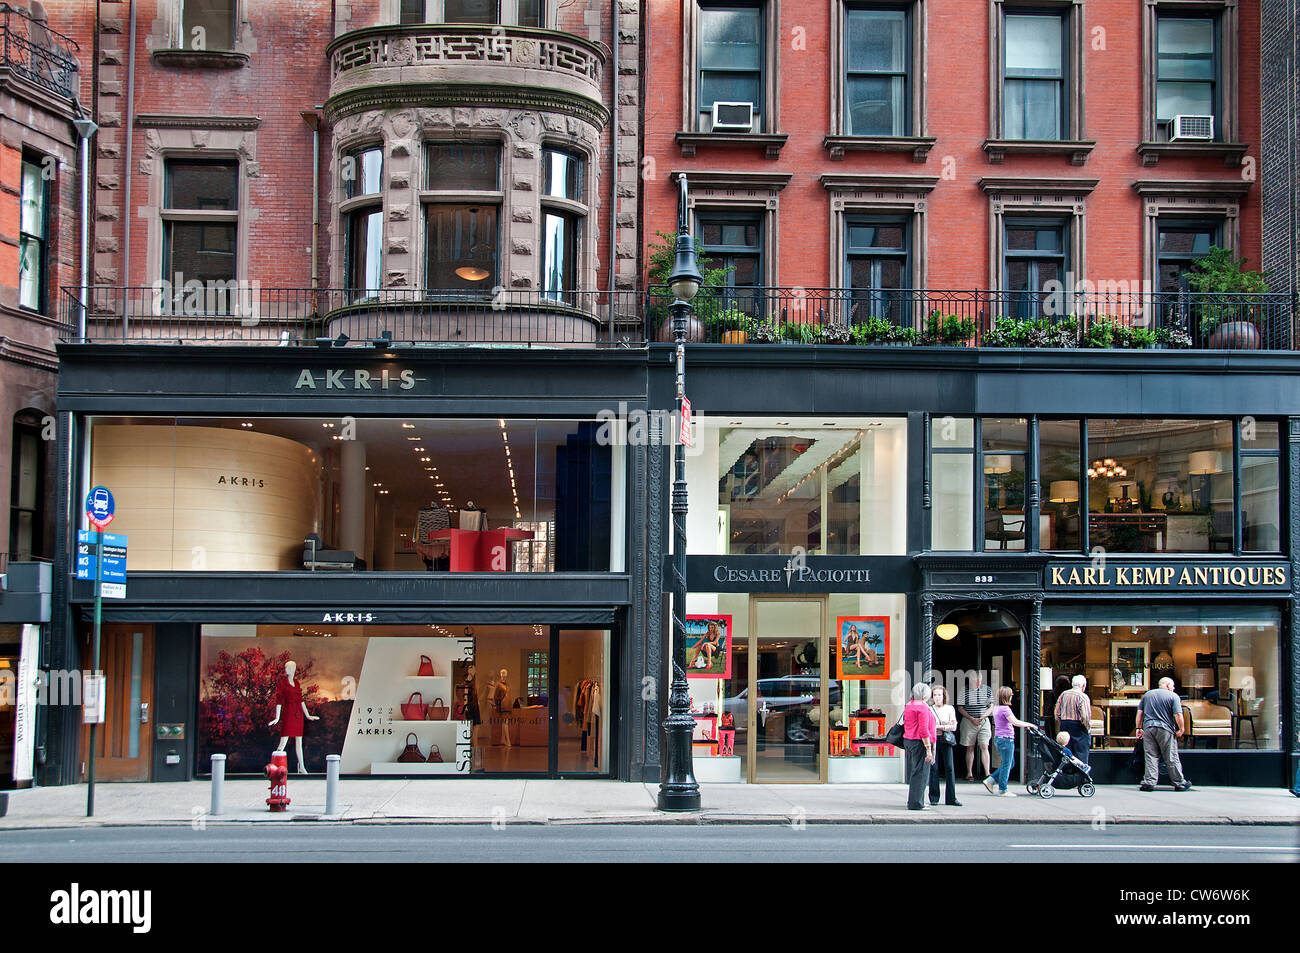 Akris Cesare Paciotti Carl Kemp Antiques  Madison Avenue Upper East Side New York City Manhattan - Stock Image